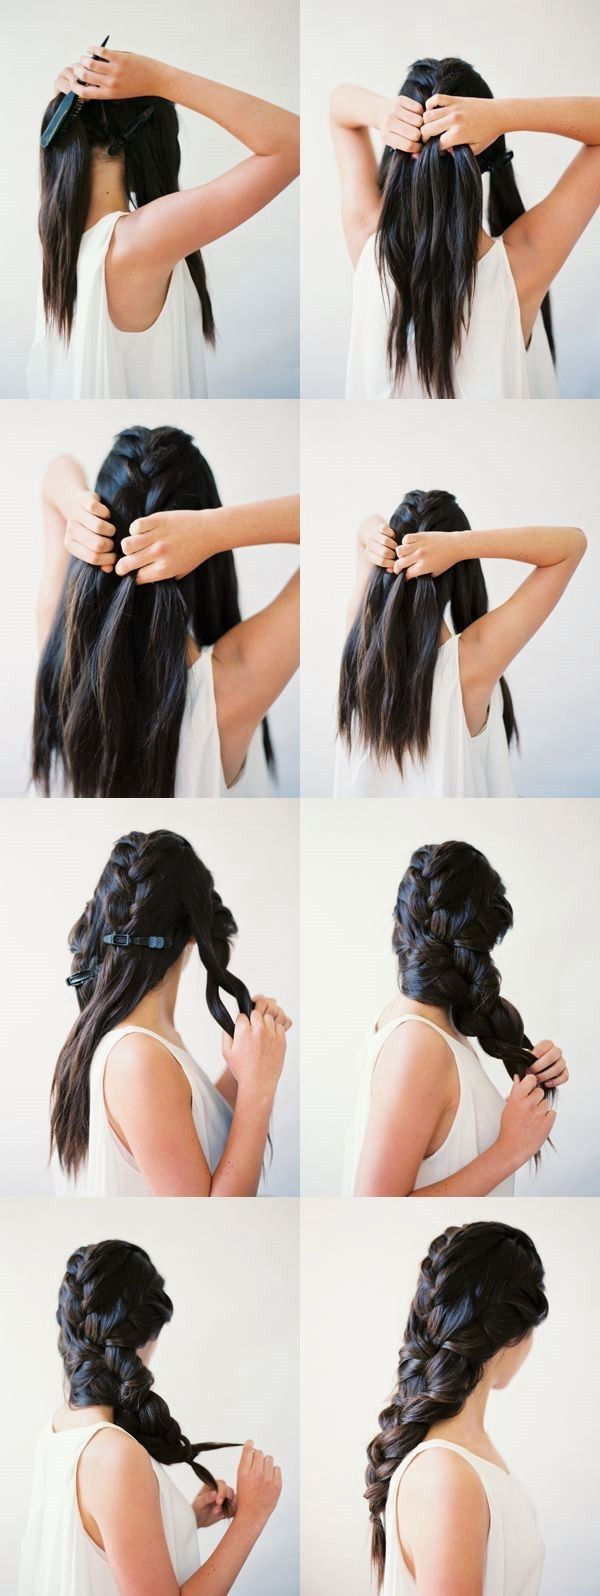 Minute officefriendly hairstyles hair style easy hair and